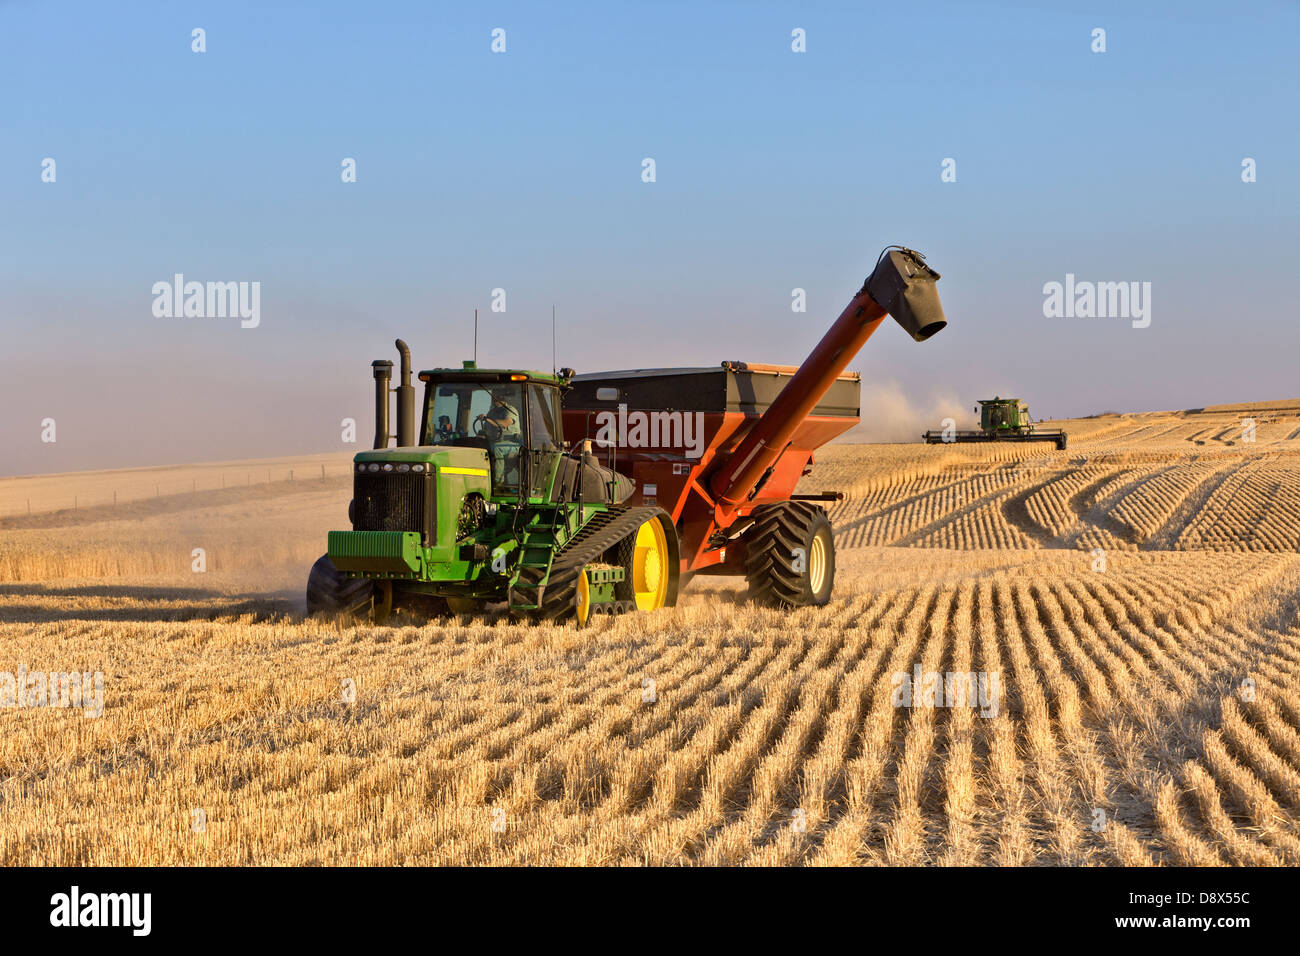 John Deer tractor pulling Brent Bank Out Wagon, wheat harvest. - Stock Image